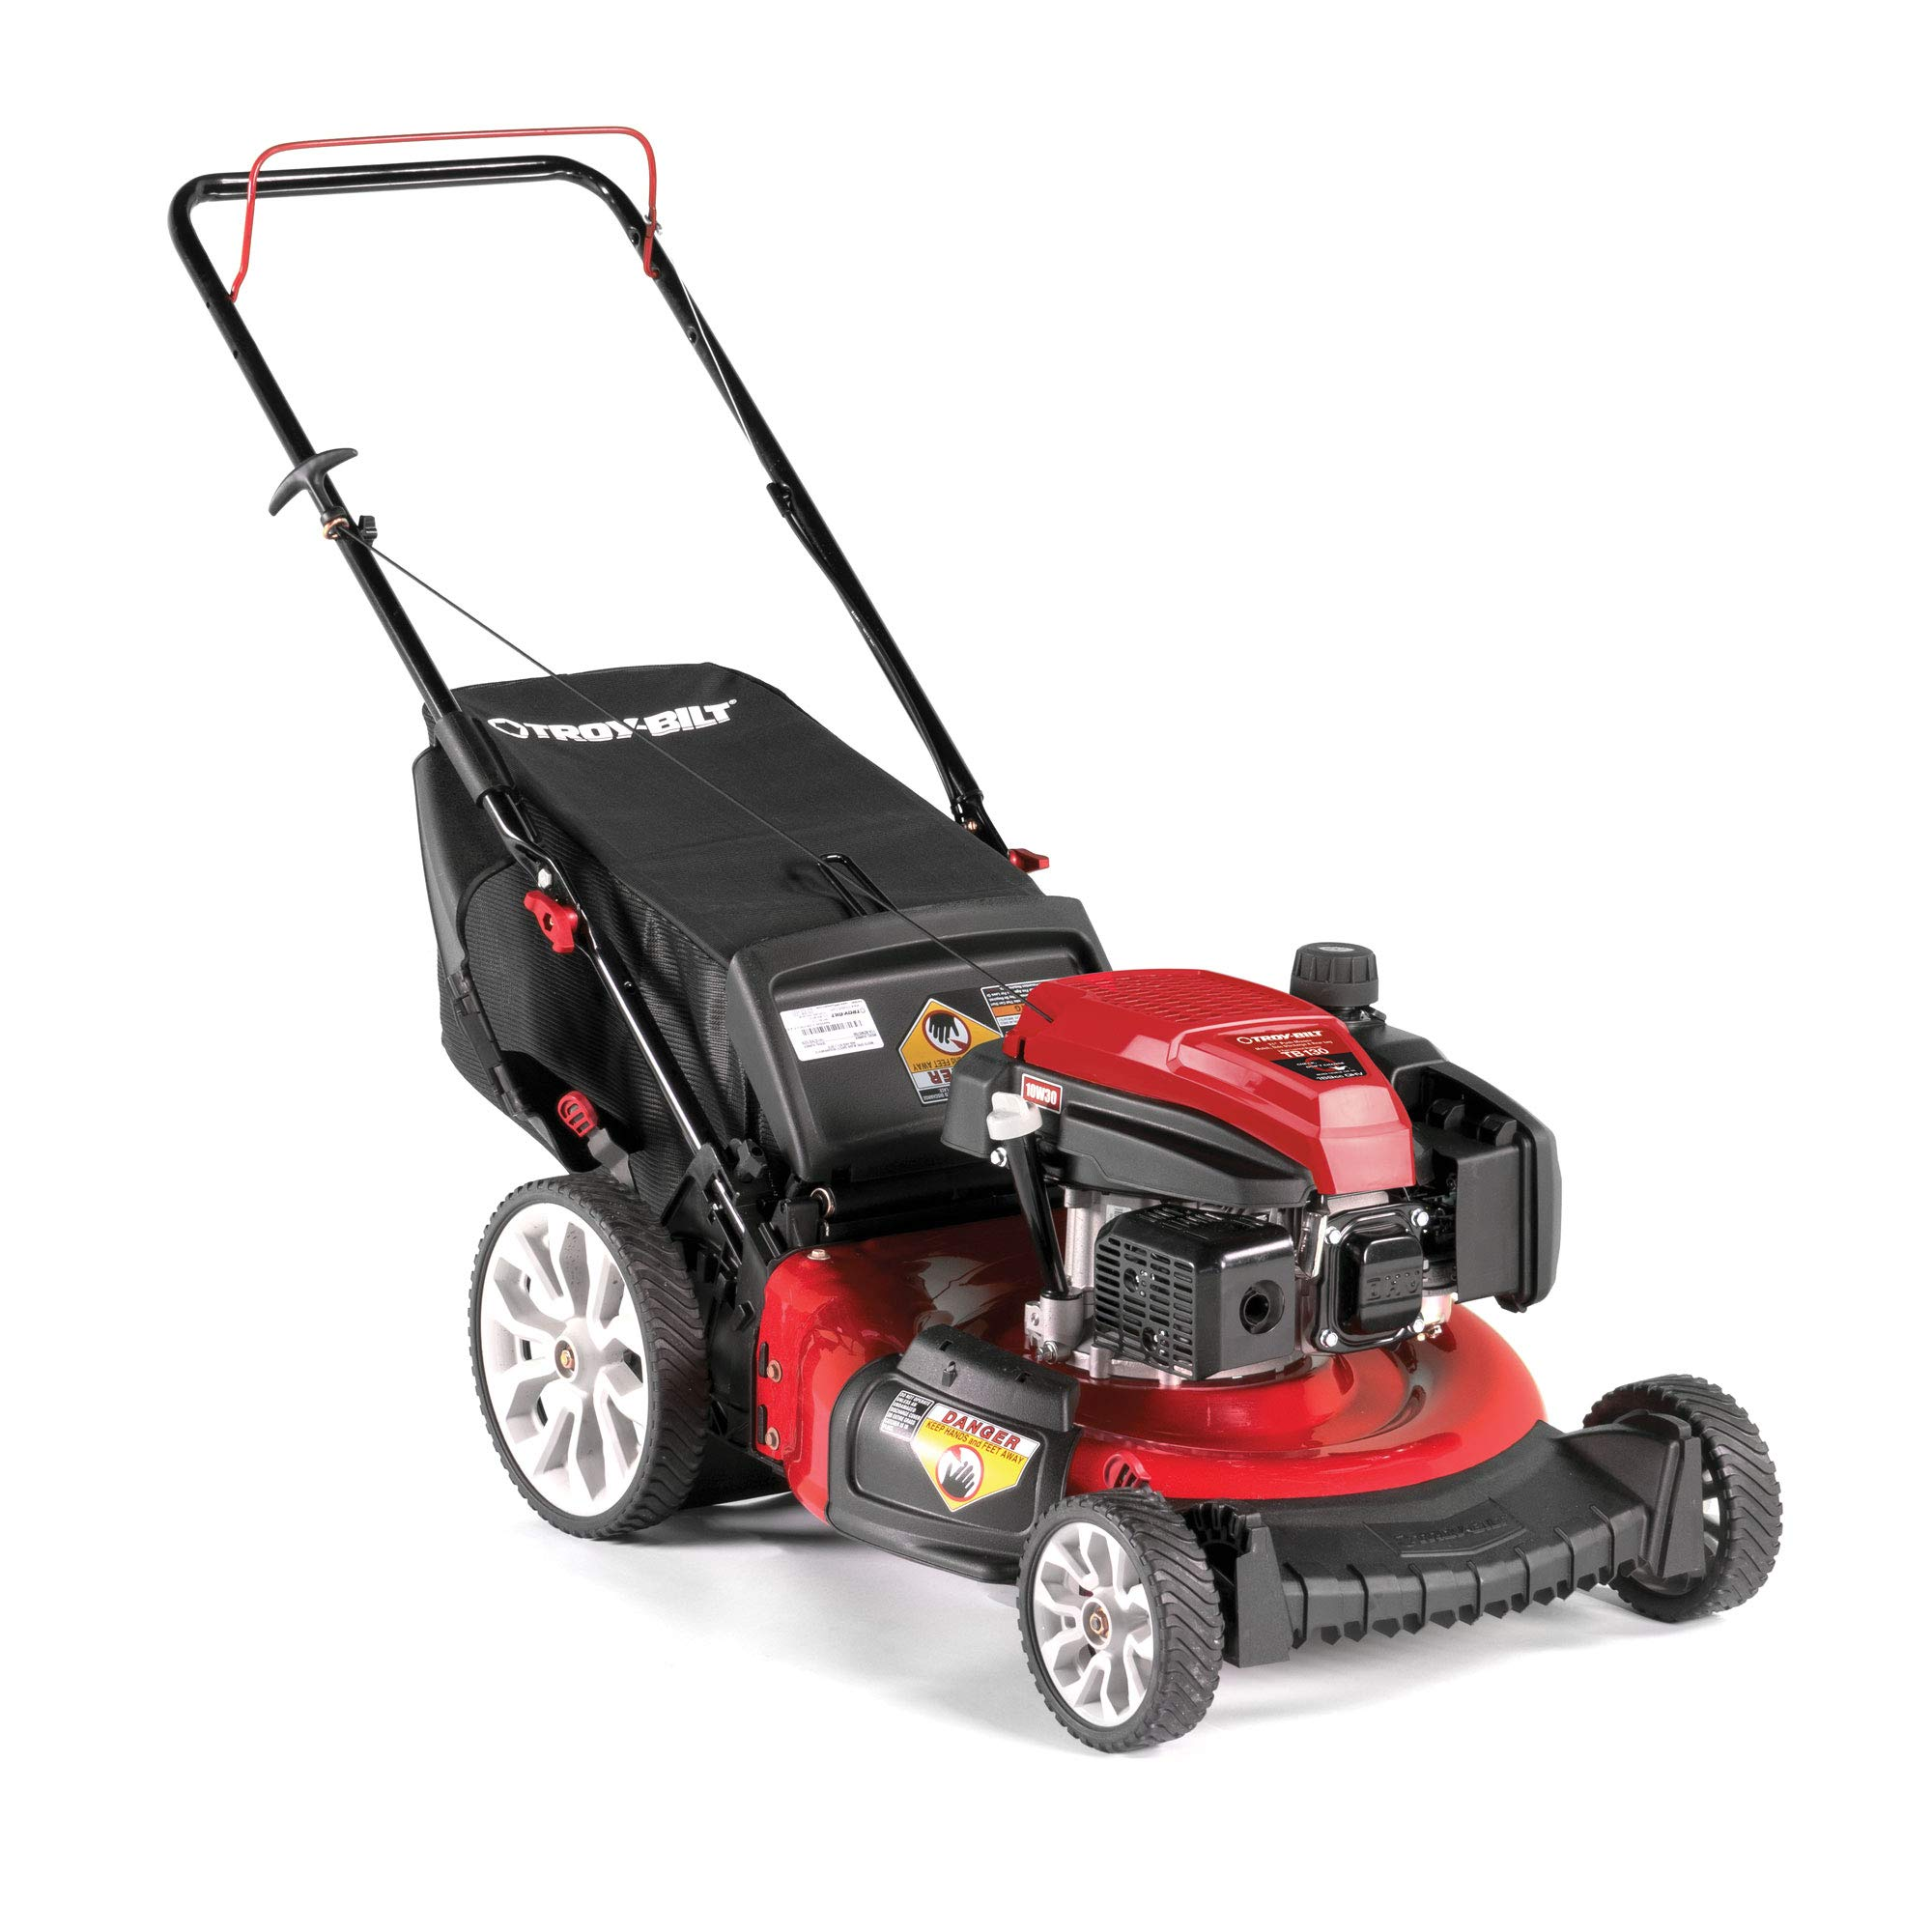 Troy Bilt TB130 21 Inch 159cc Gas Mulching Push Walk Behind Lawn Mower, Red